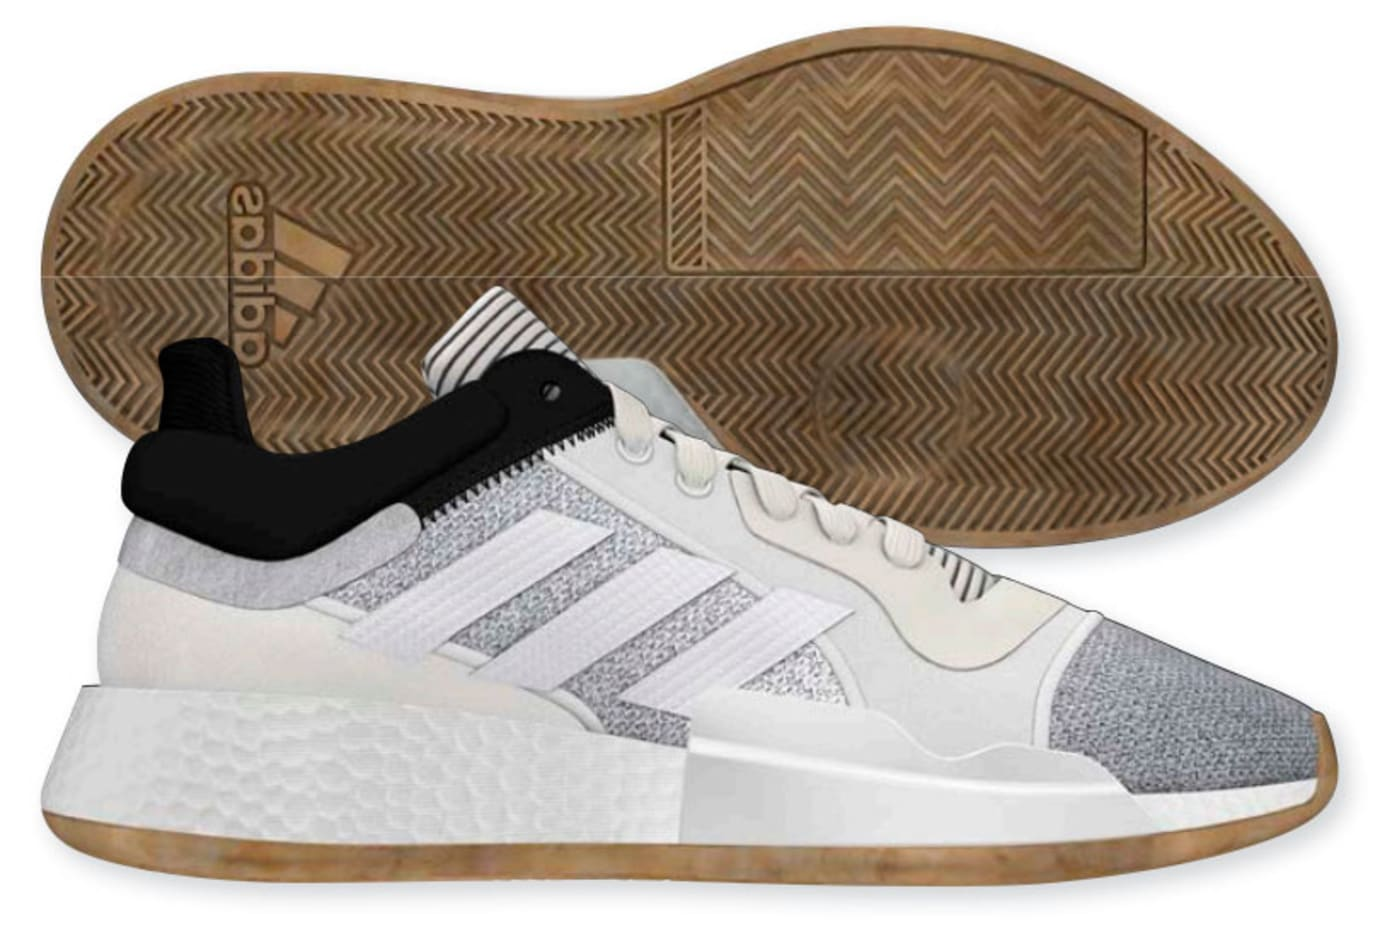 Adidas Marquee Boost Mid Low BB7822 D96933  199e3a5f8